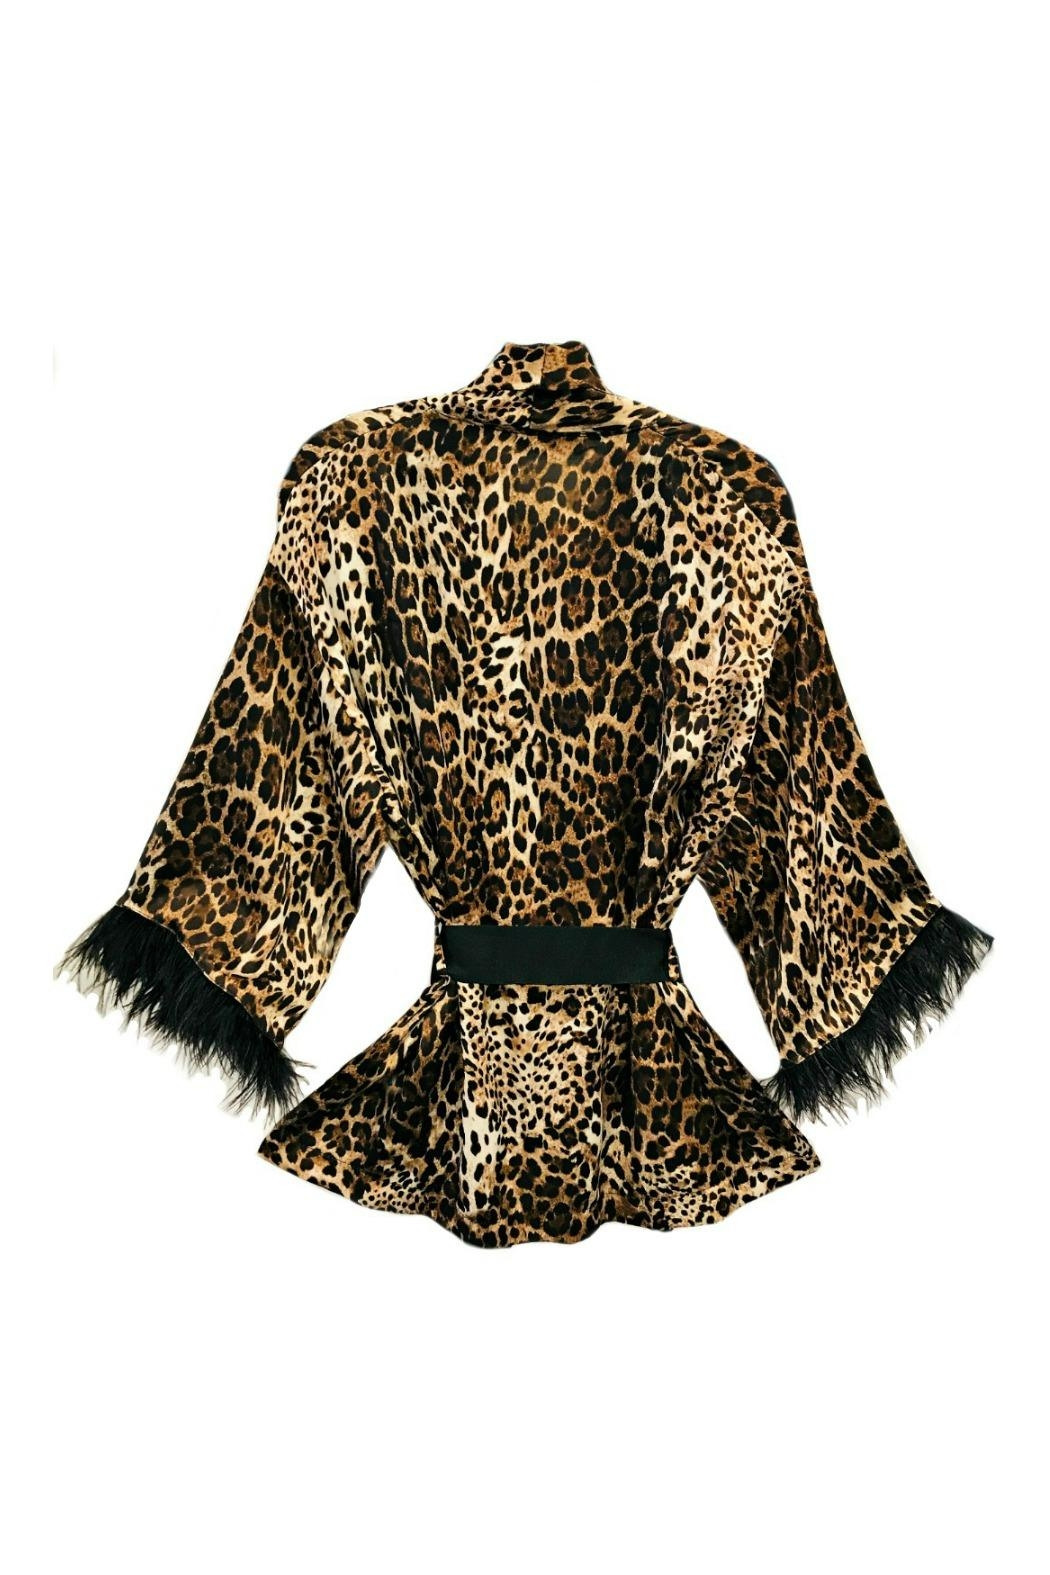 ANTONELLO SERIO Animal Print Cardigan - Front Full Image